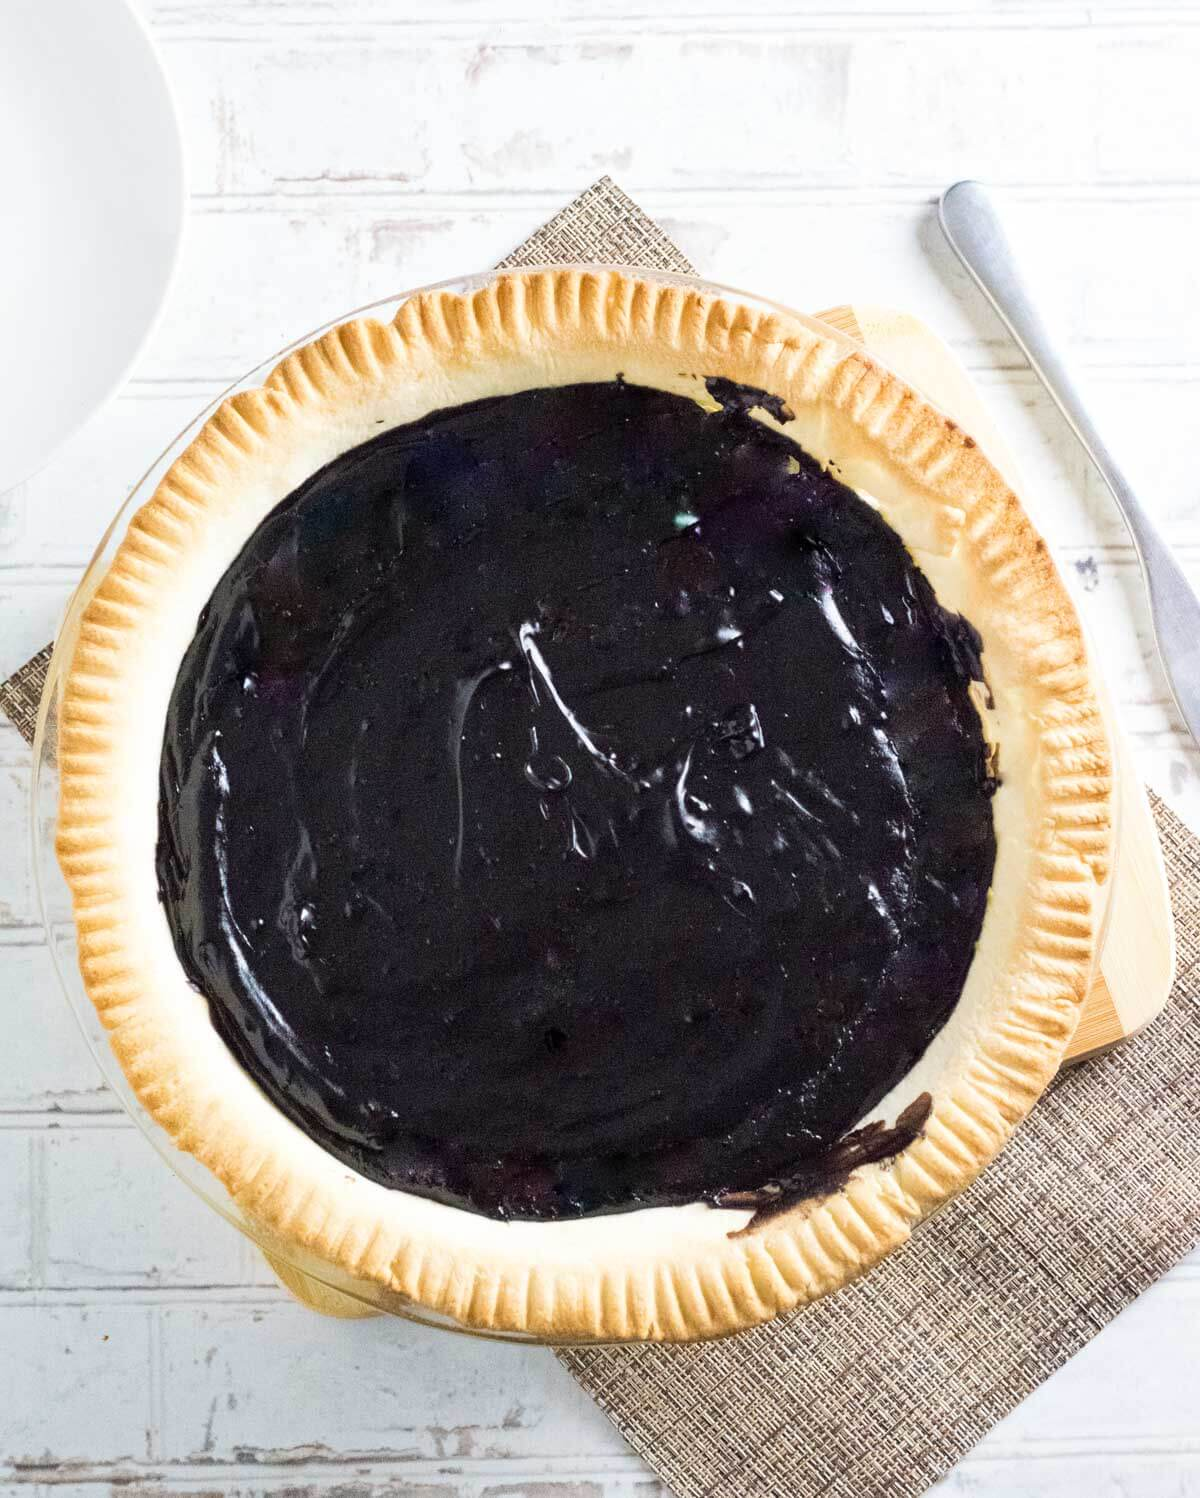 Old fashioned chocolate pie.